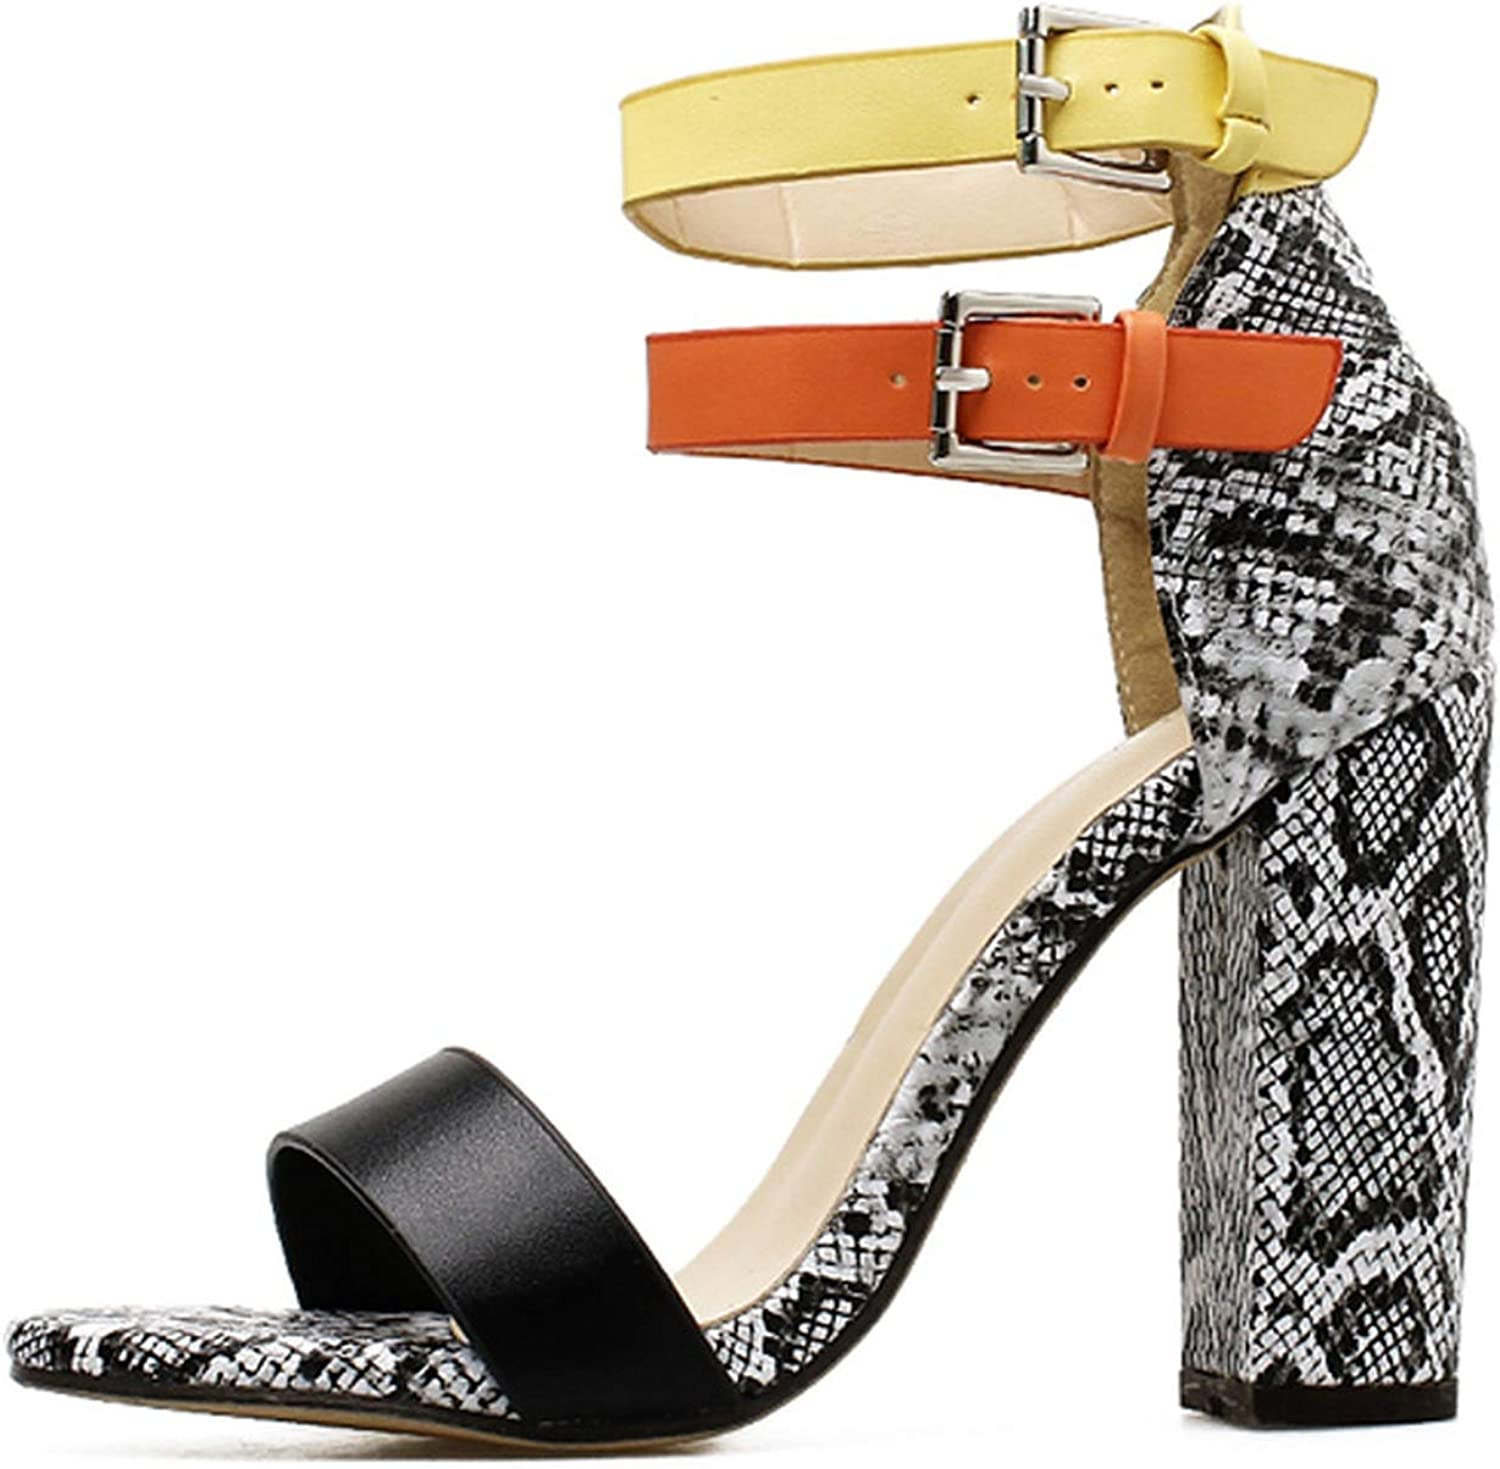 Ches Retro Style Serpentine Patchwork Gladiator Sandals Buckle Peep Toe Thick Heel Platform Fashion Lady Party shoes Women